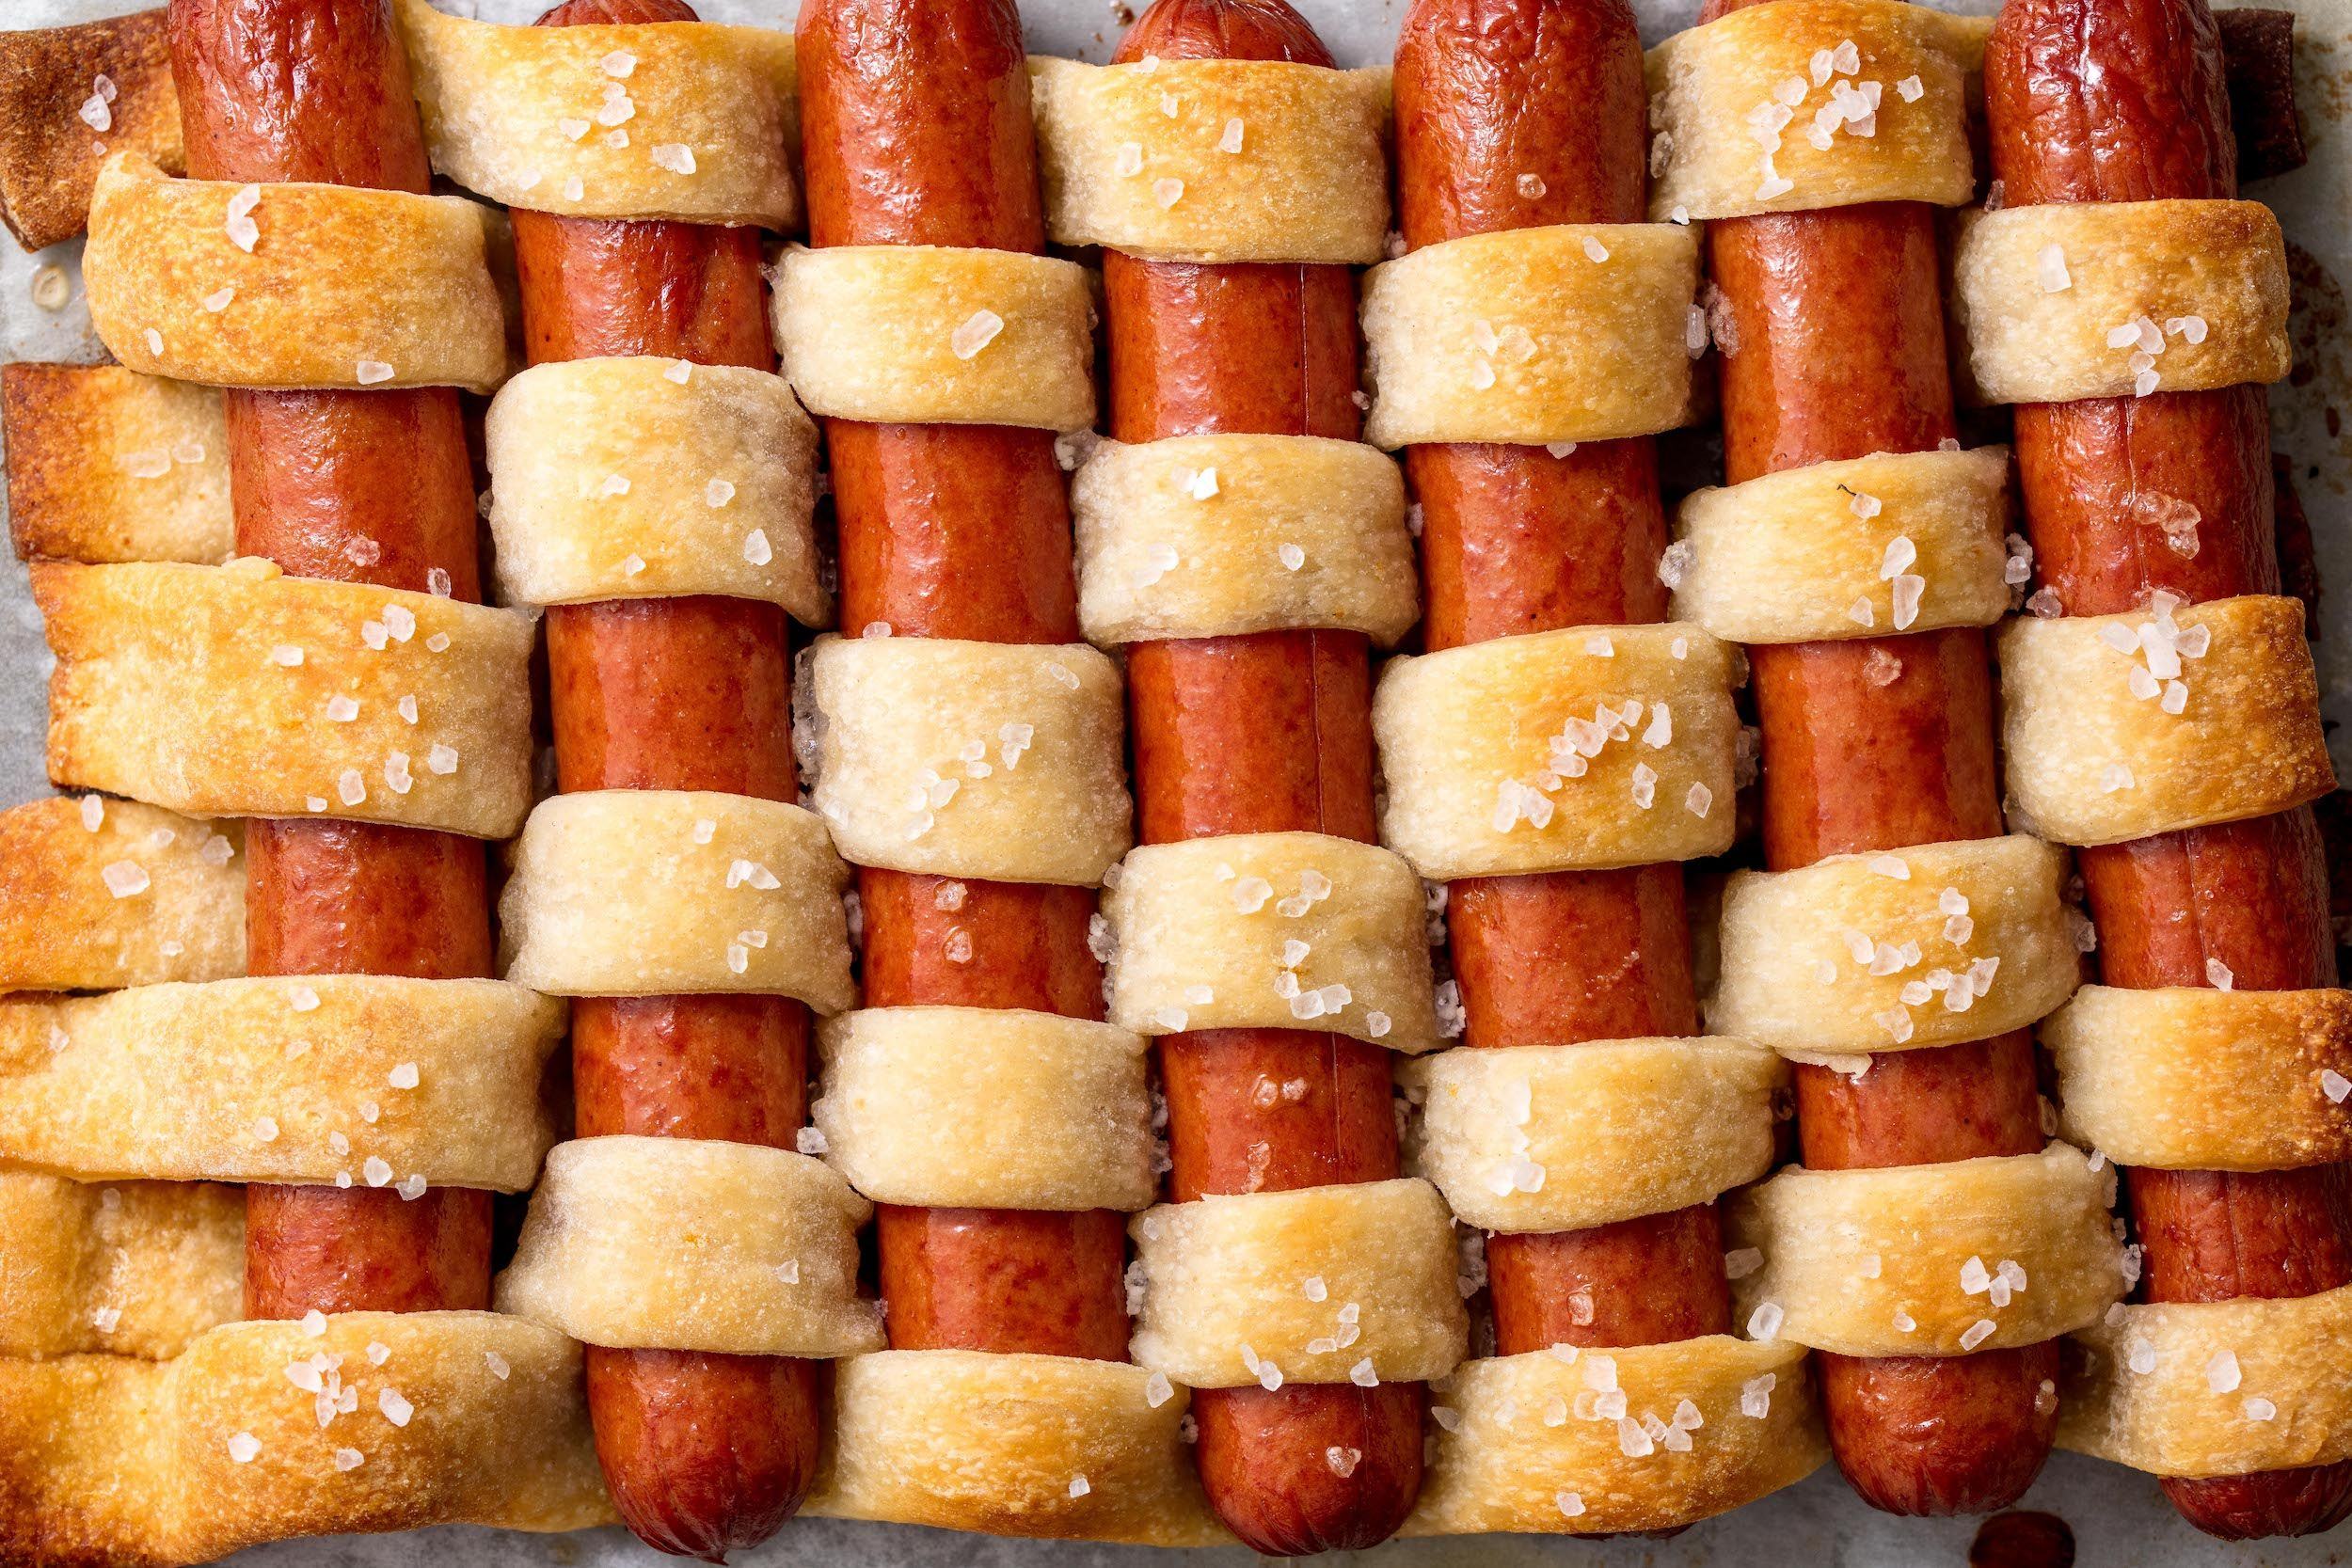 46 Insane-Slash-Brilliant Things To Do With Hot Dogs